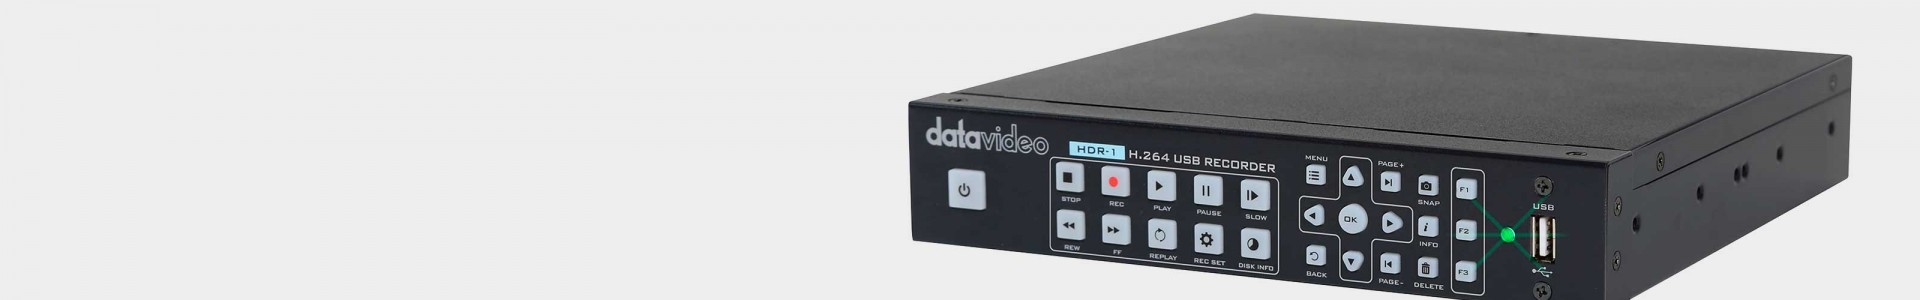 Datavideo video recorders - Professional solutions - Avacab